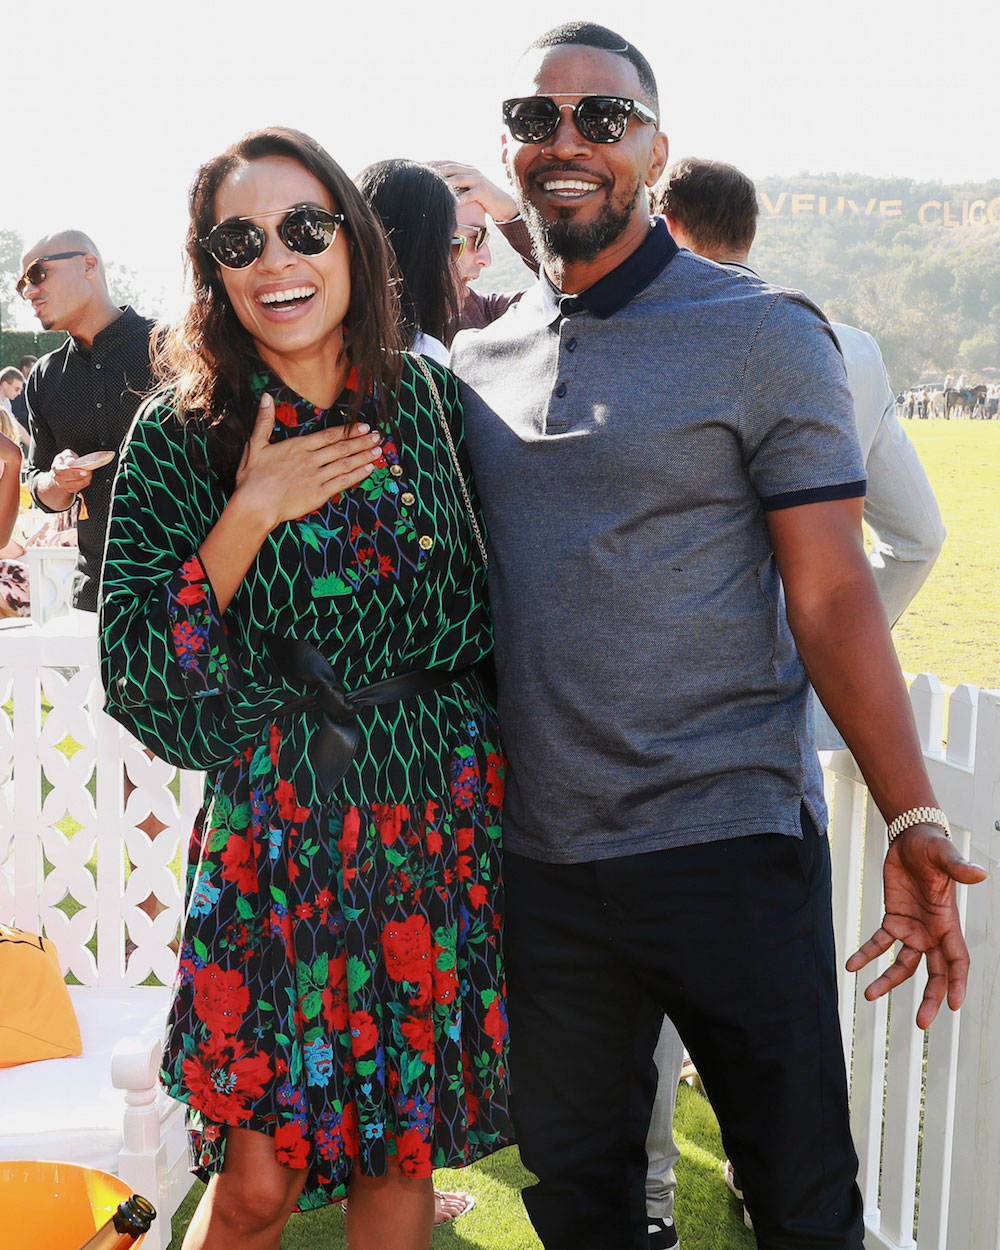 (Jamie Foxx, Rosario Dawson/Photo by BFA Images)